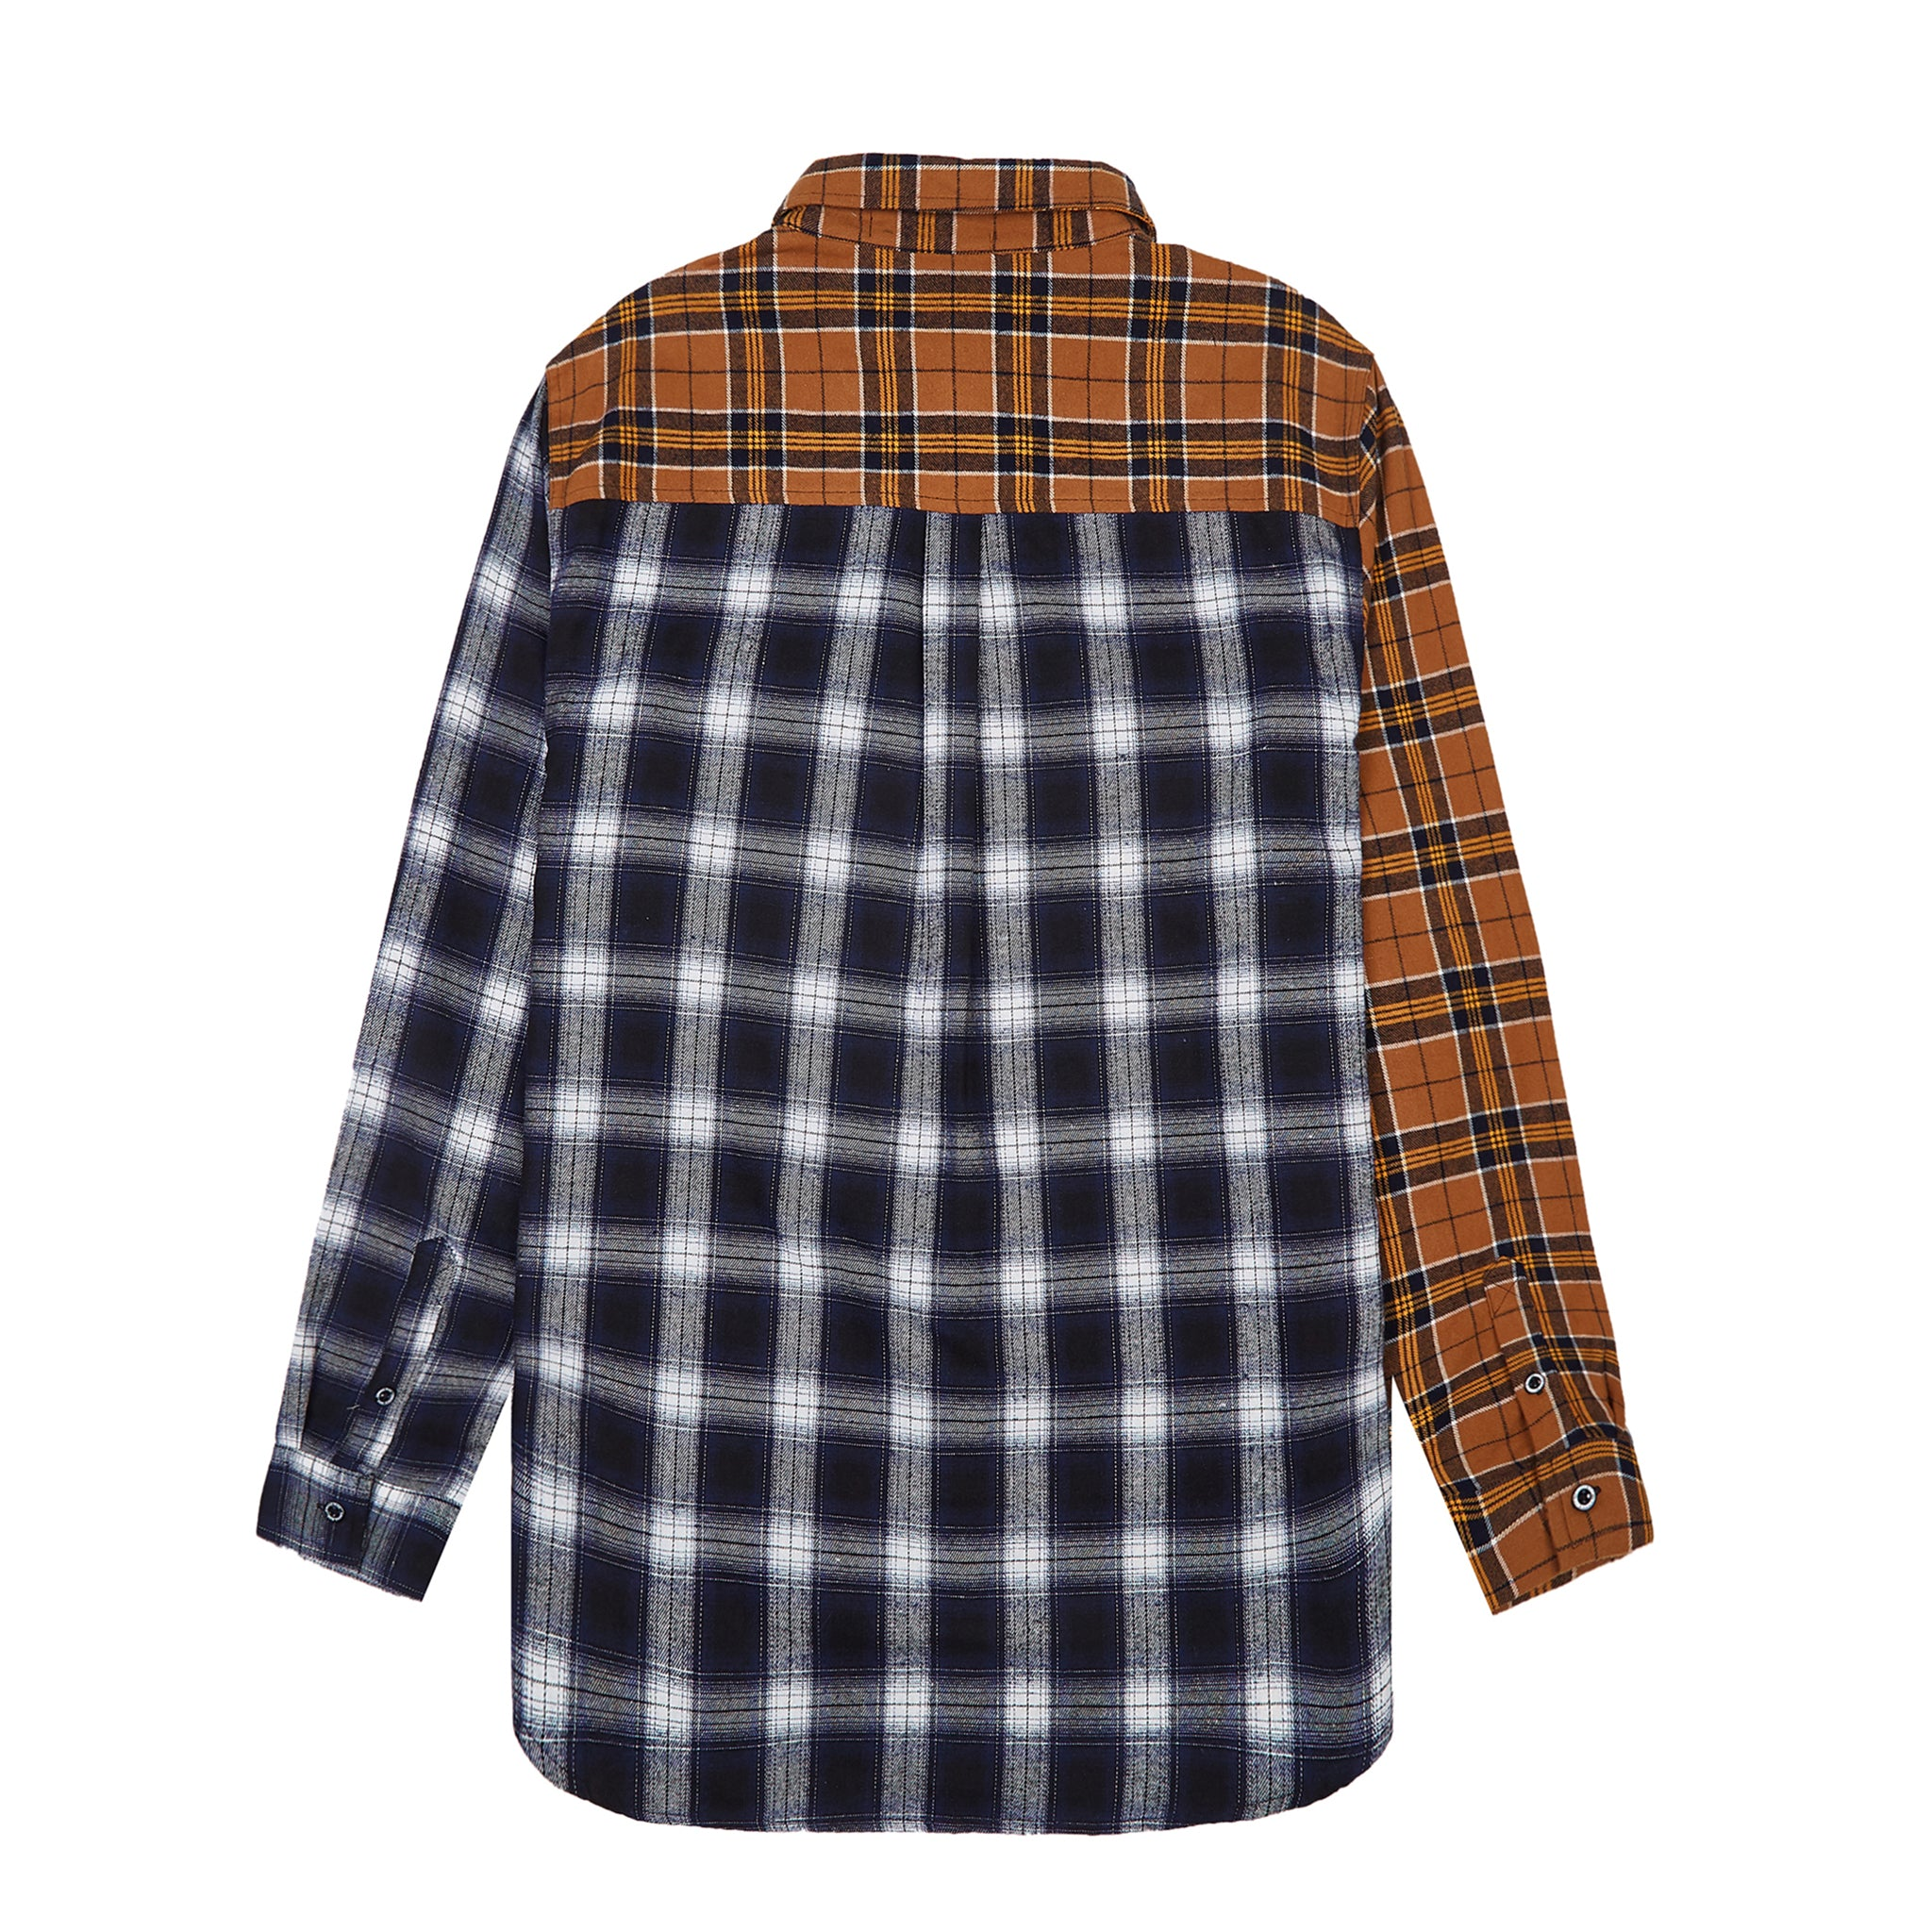 Load image into Gallery viewer, LFD Check vs Check shirt